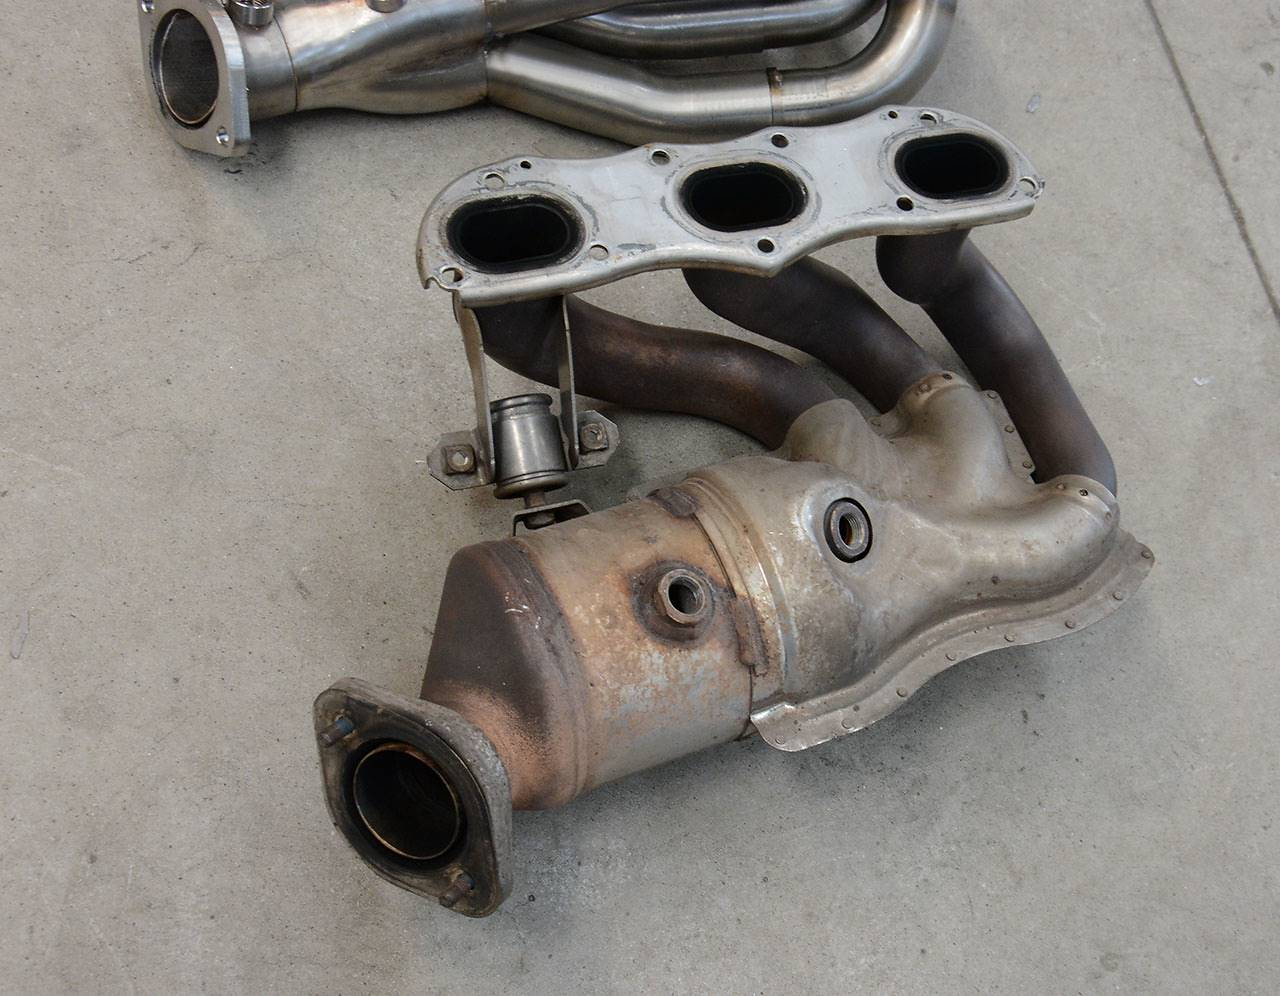 Porsche 981 - Stock headers